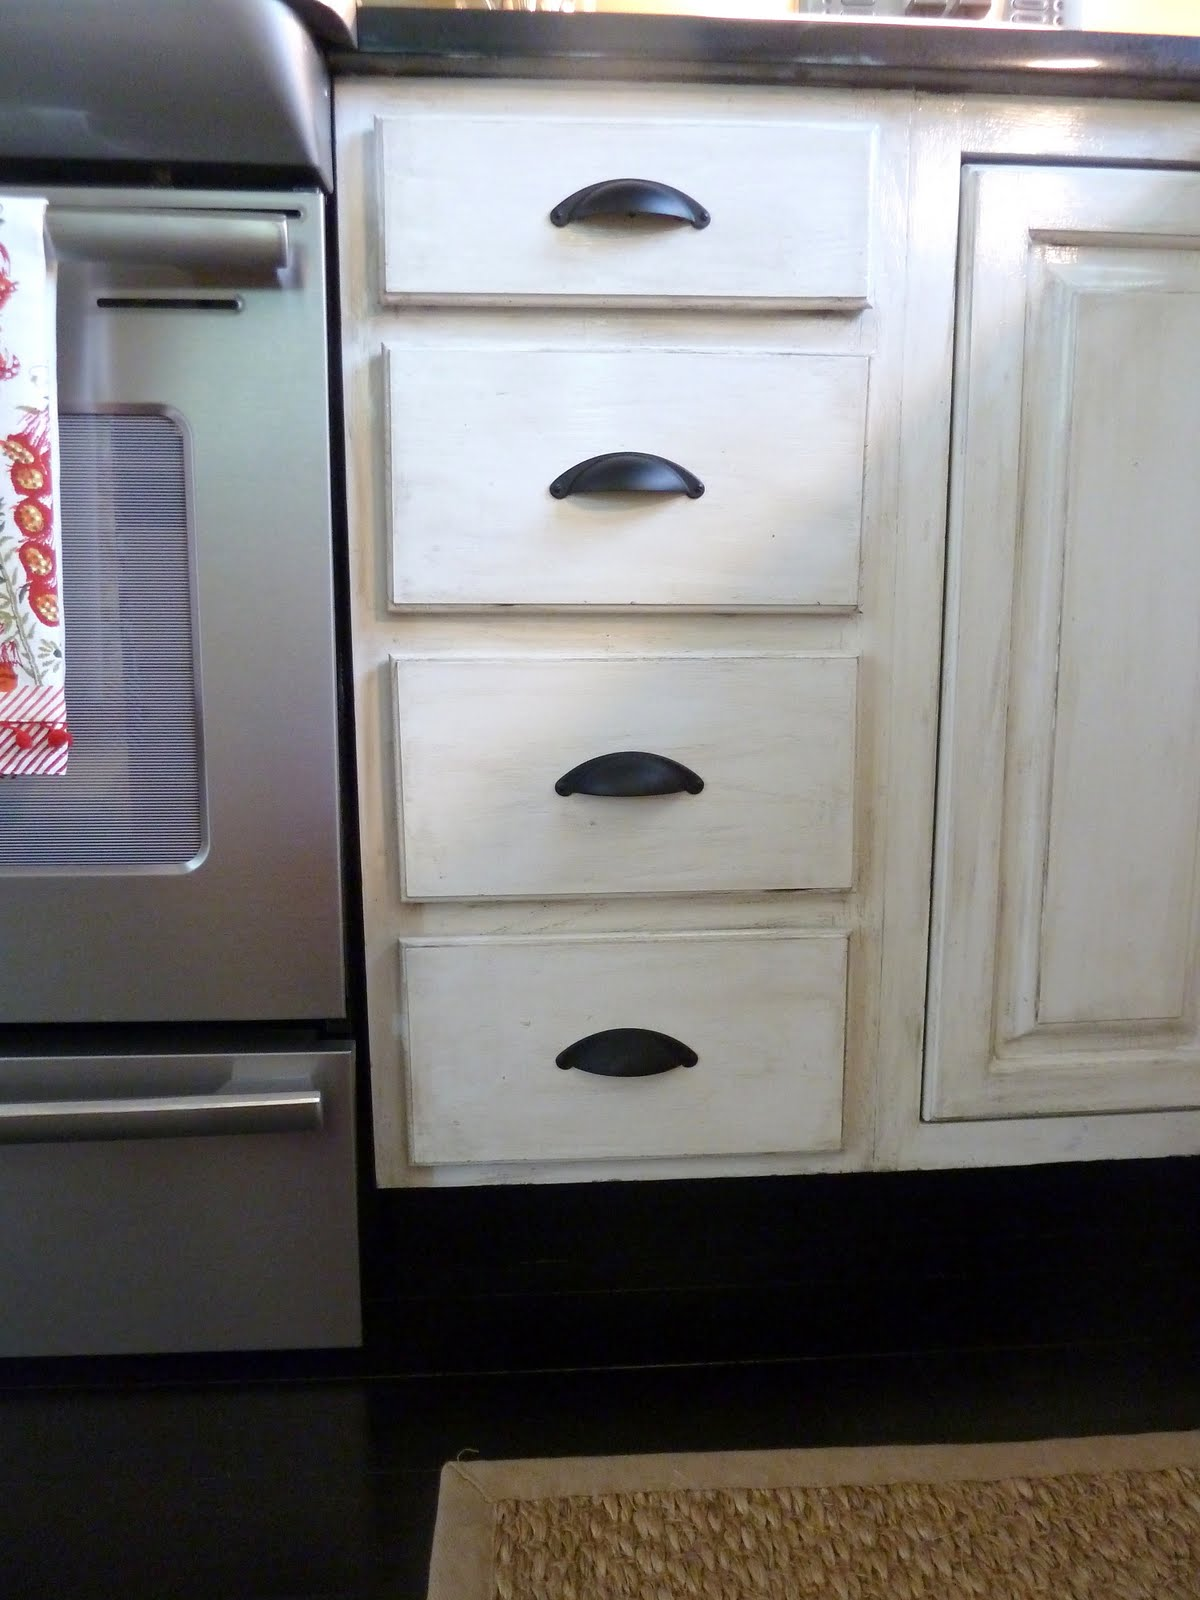 Our fifth house distressed kitchen cabinets how to for Distressed kitchen cabinets